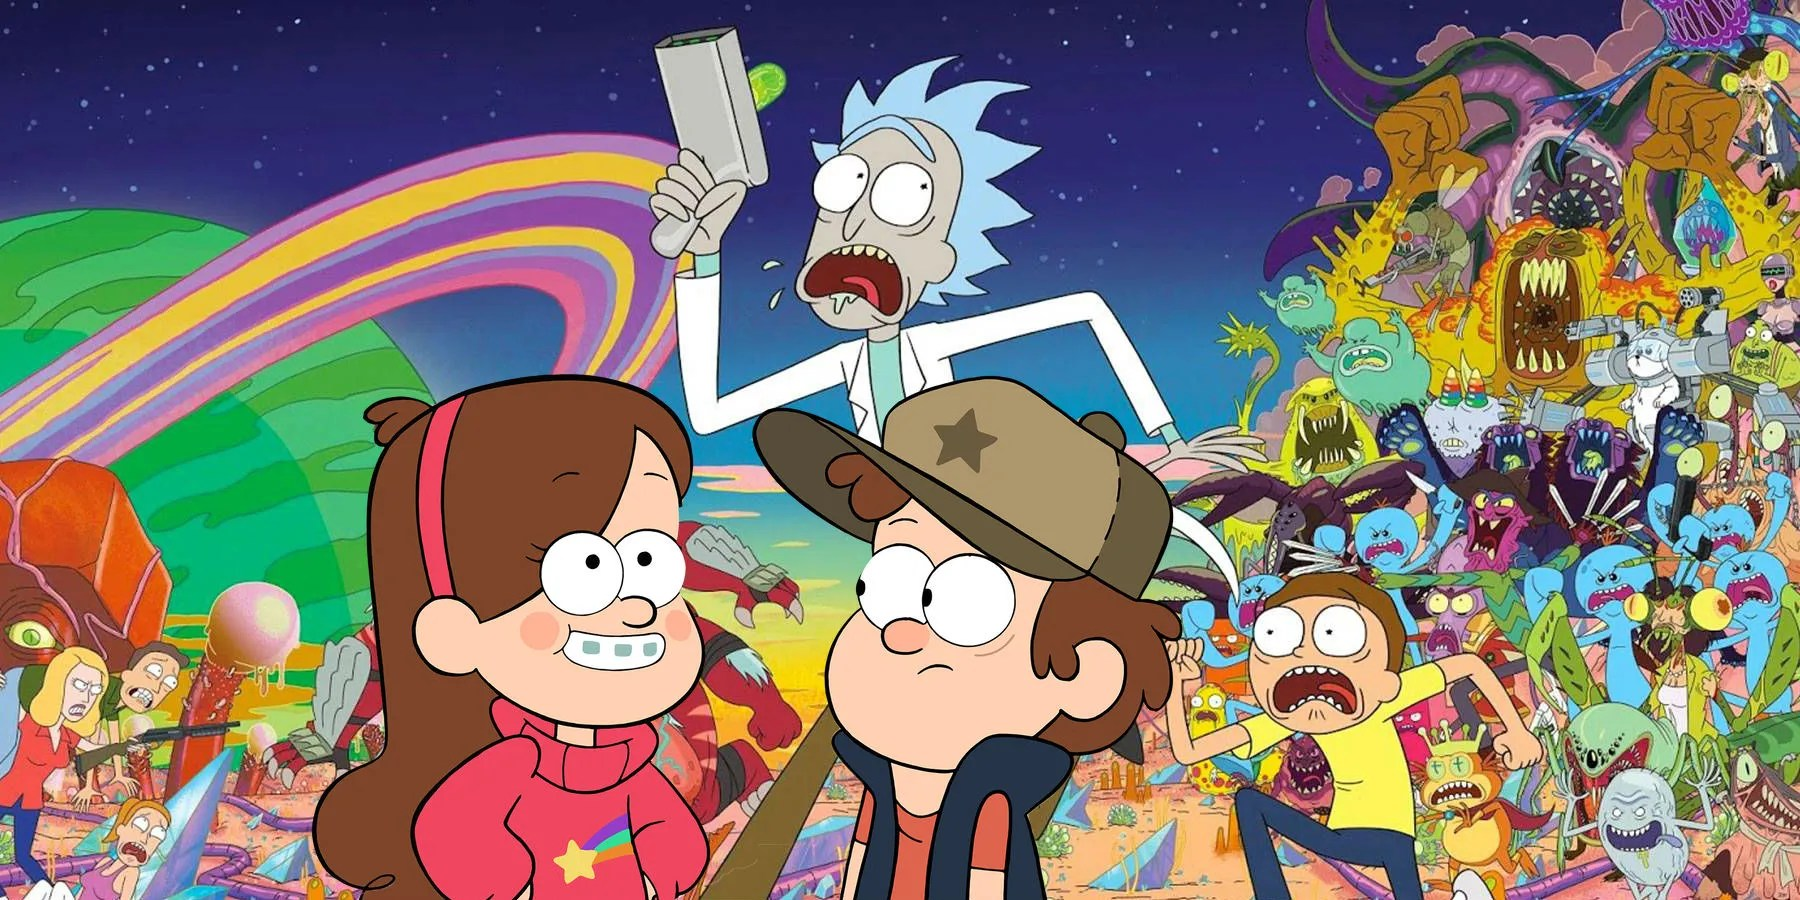 10 Gravity Falls Easter Eggs Hidden In Rick And Morty